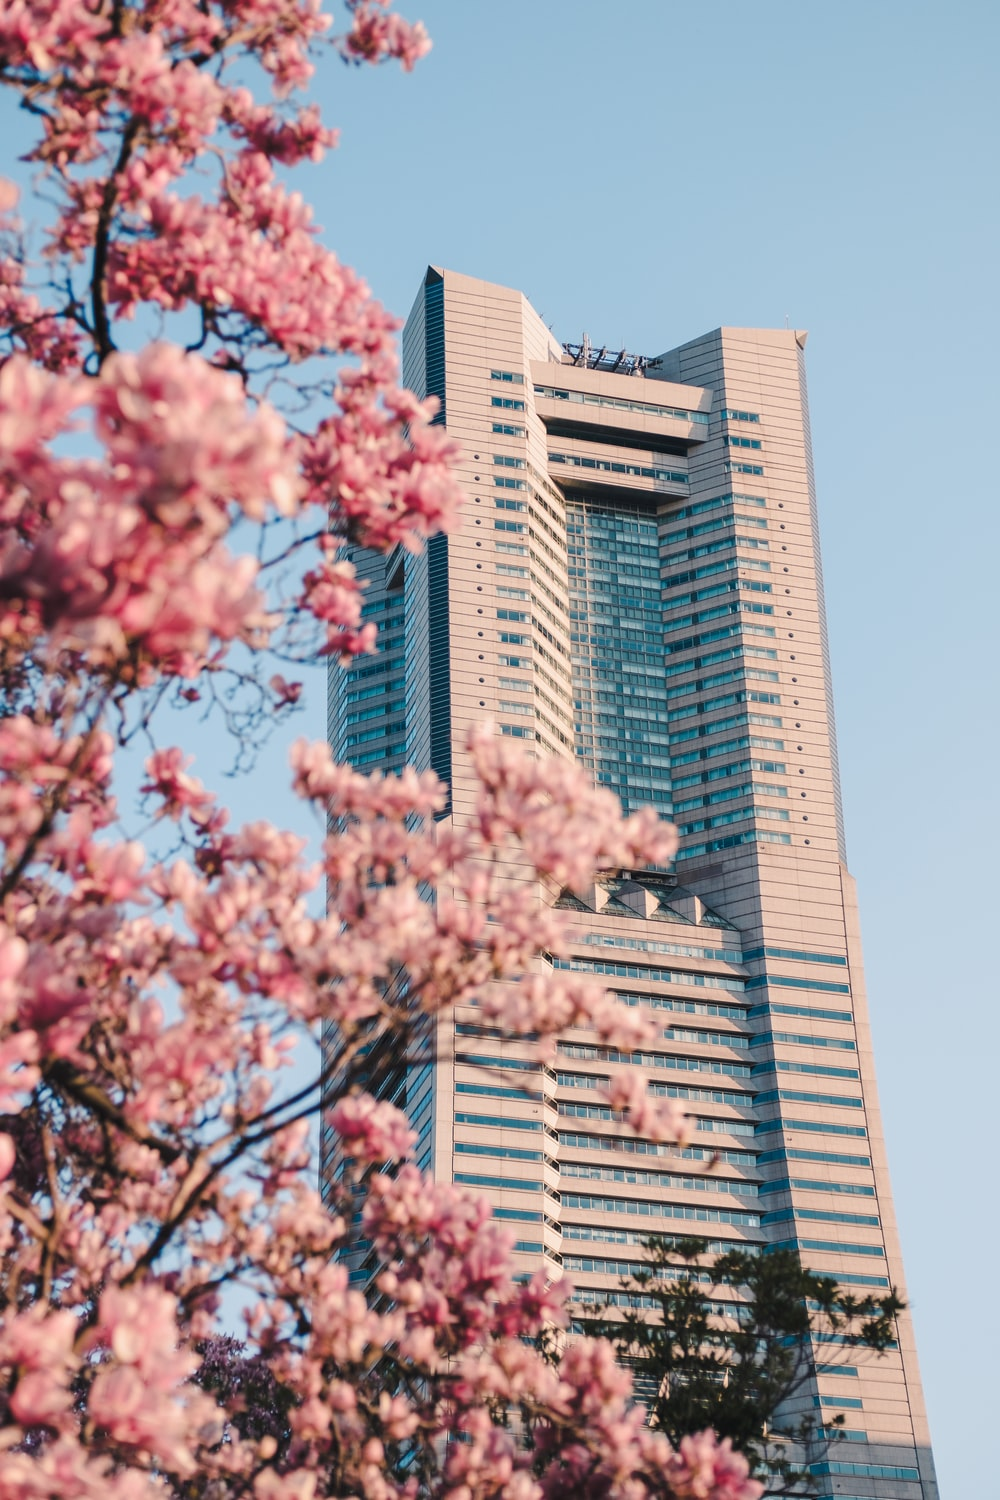 pink cherry blossom tree near brown concrete building during daytime